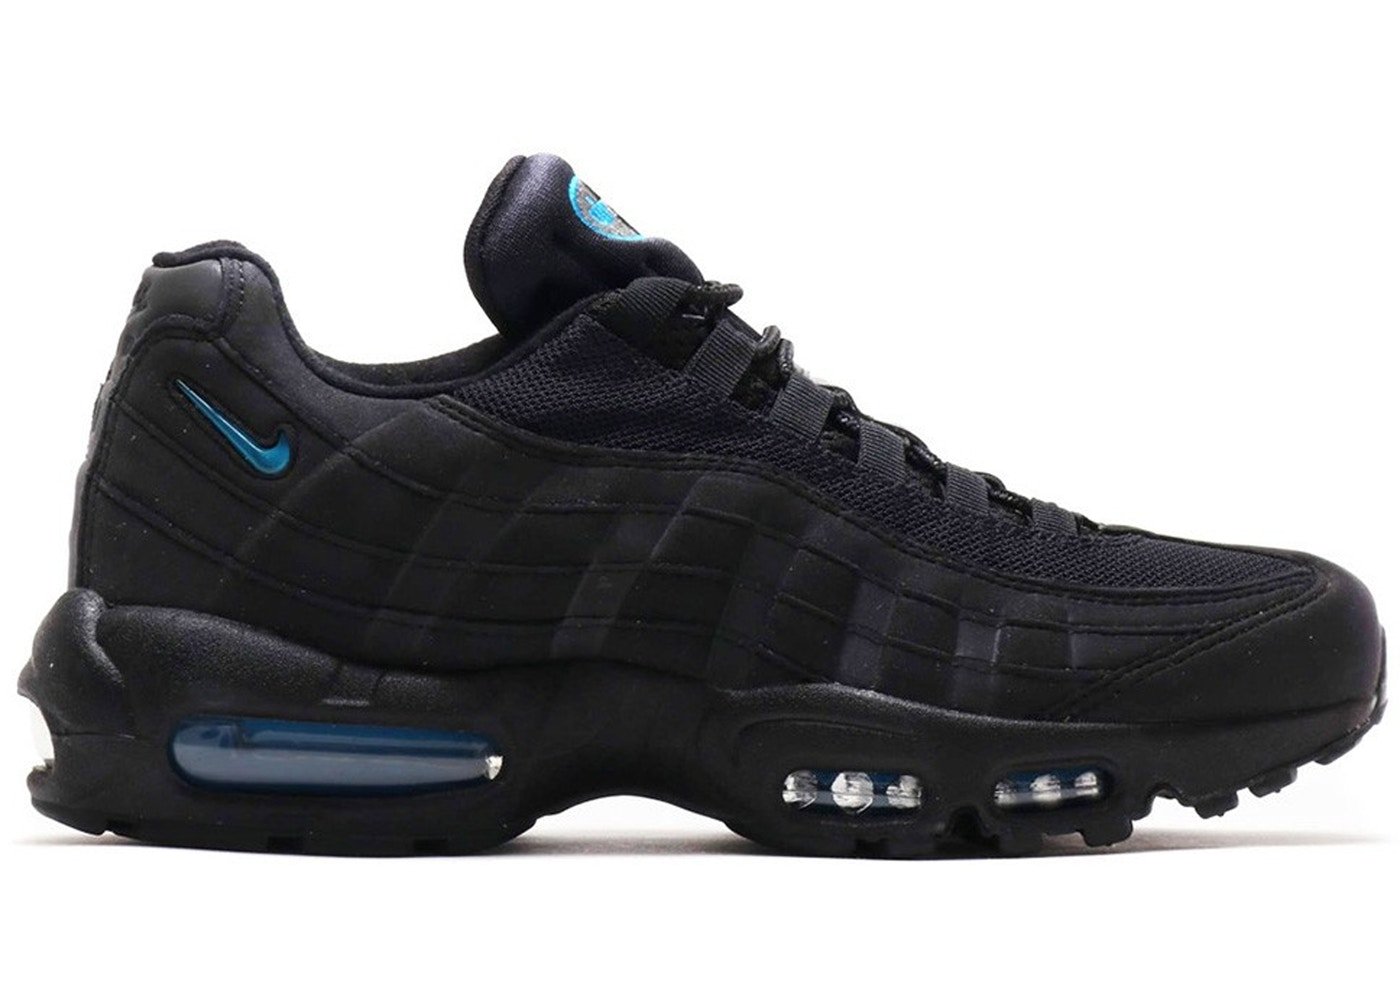 Nike Air Max 95 Black Imperial Blue Atmos Exclusive Sneakers